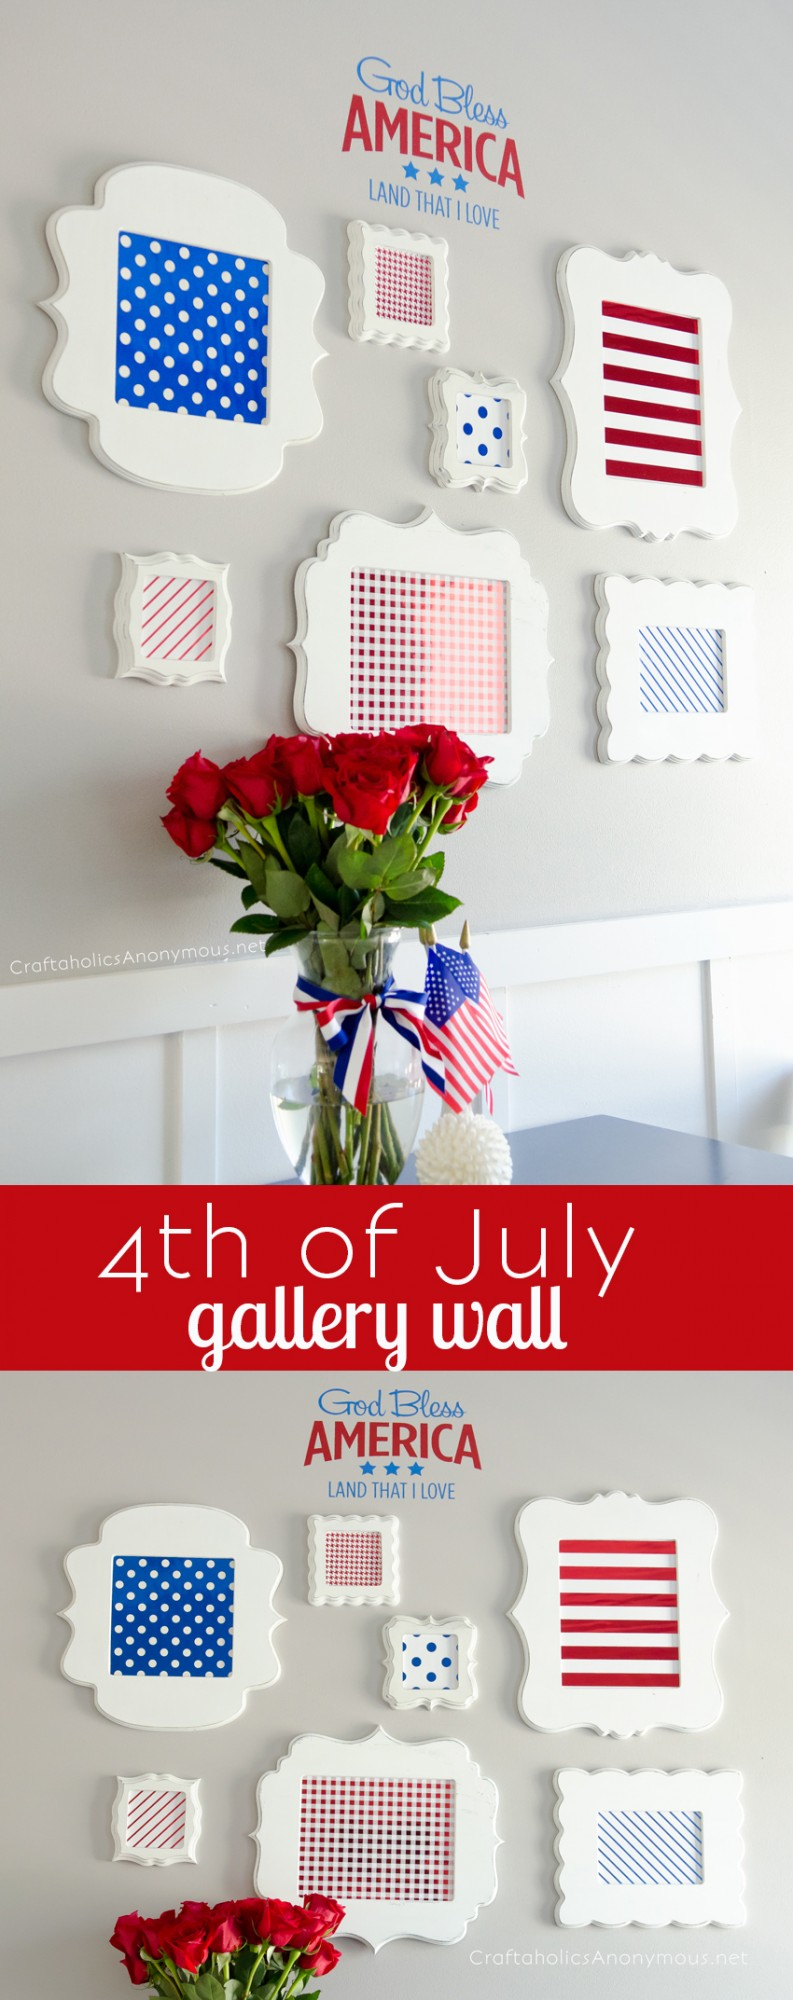 4th-of-July-gallery-wall-collage